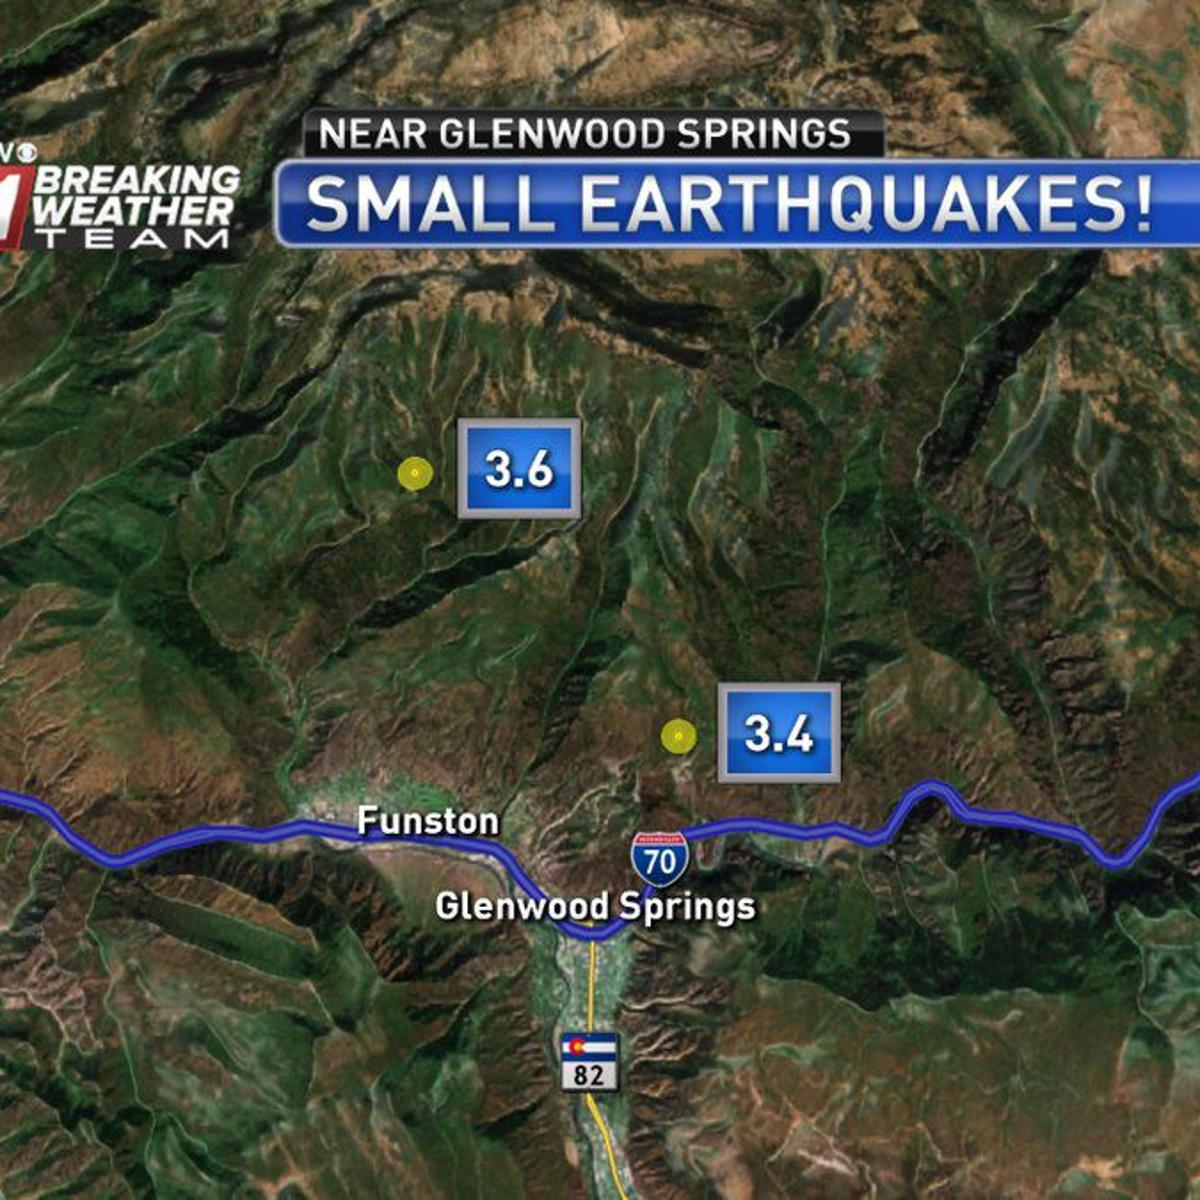 Two small earthquakes rattle area near Glenwood Springs ... on west vail map, pagosa map, manitou springs co map, montrose map, greenwood village map, denver map, eagle map, glenwood canyon map, colorado map, broomfield map, newport news map, las vegas map, arvada map, lochbuie map, aspen map, fairfield map, saguache map, steamboat area map, norman map,